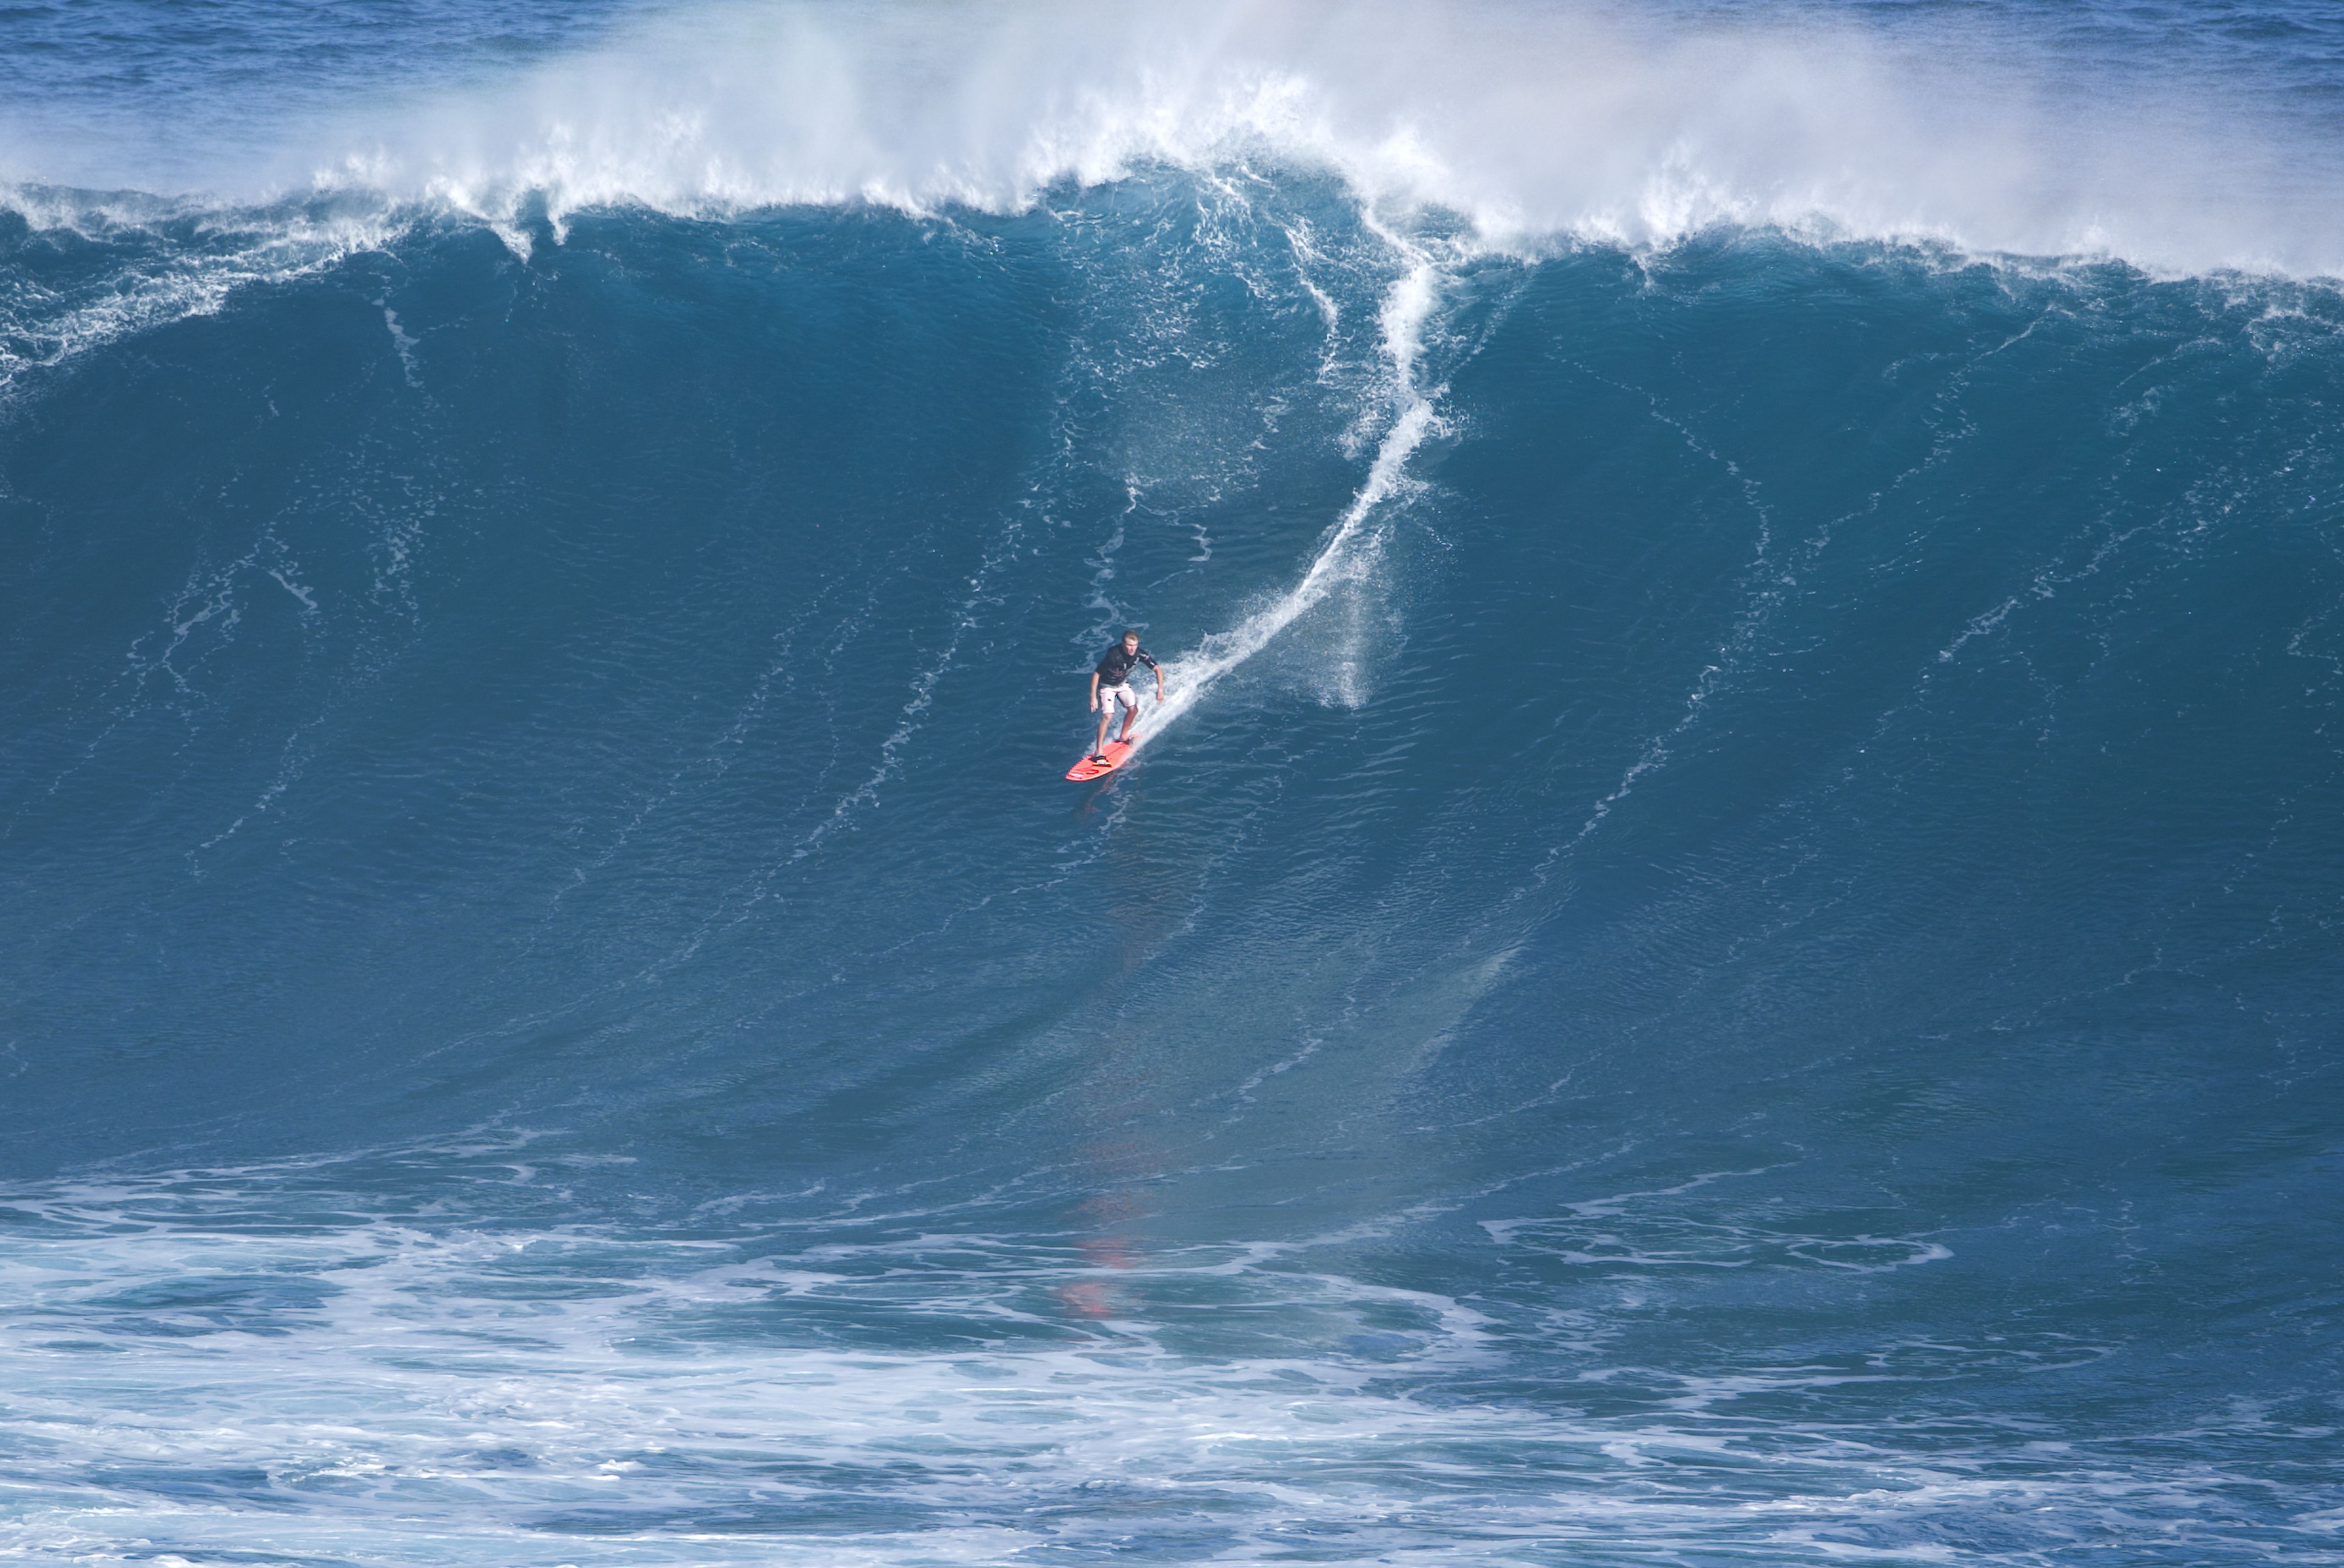 The 31st Annual Quiksilver In Memory Of Eddie Aikau